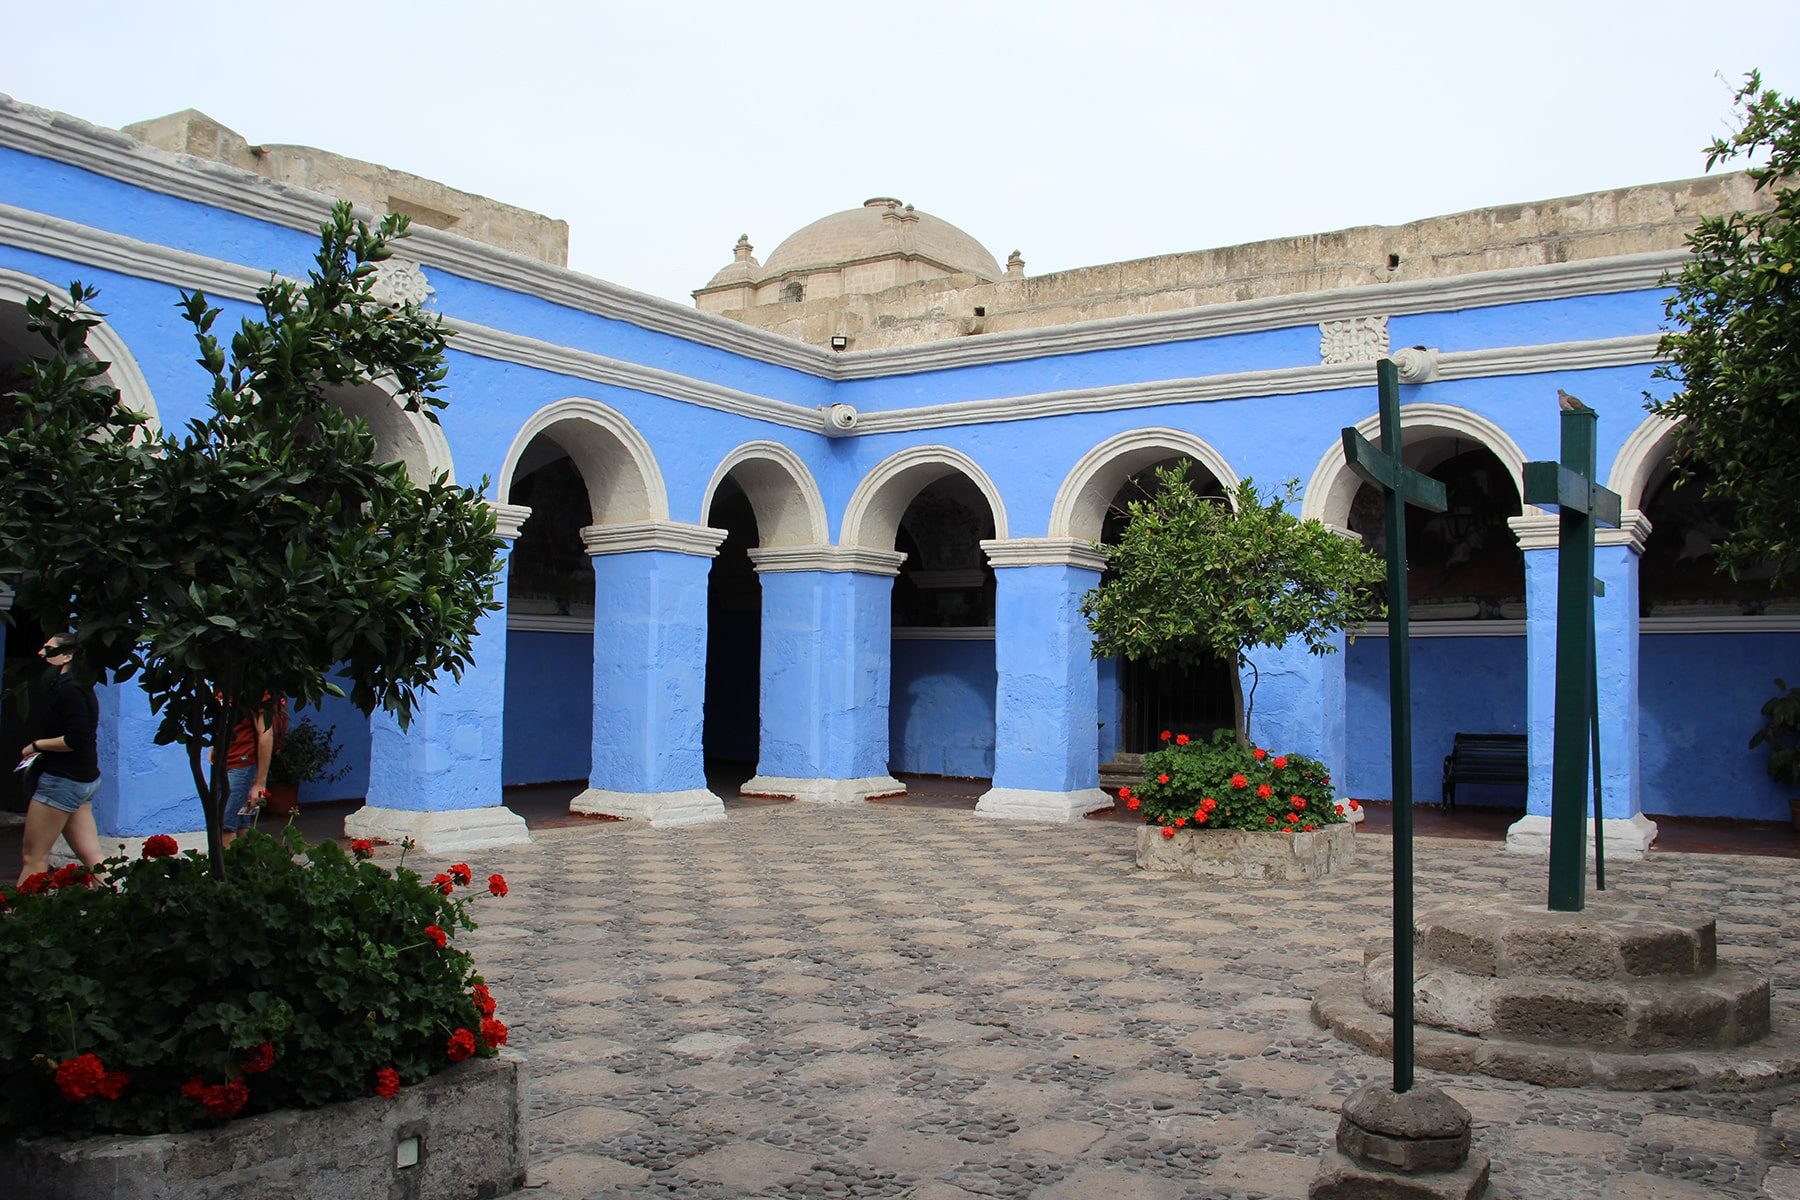 A courtyard in Monastery of Santa Catalina Arequipa